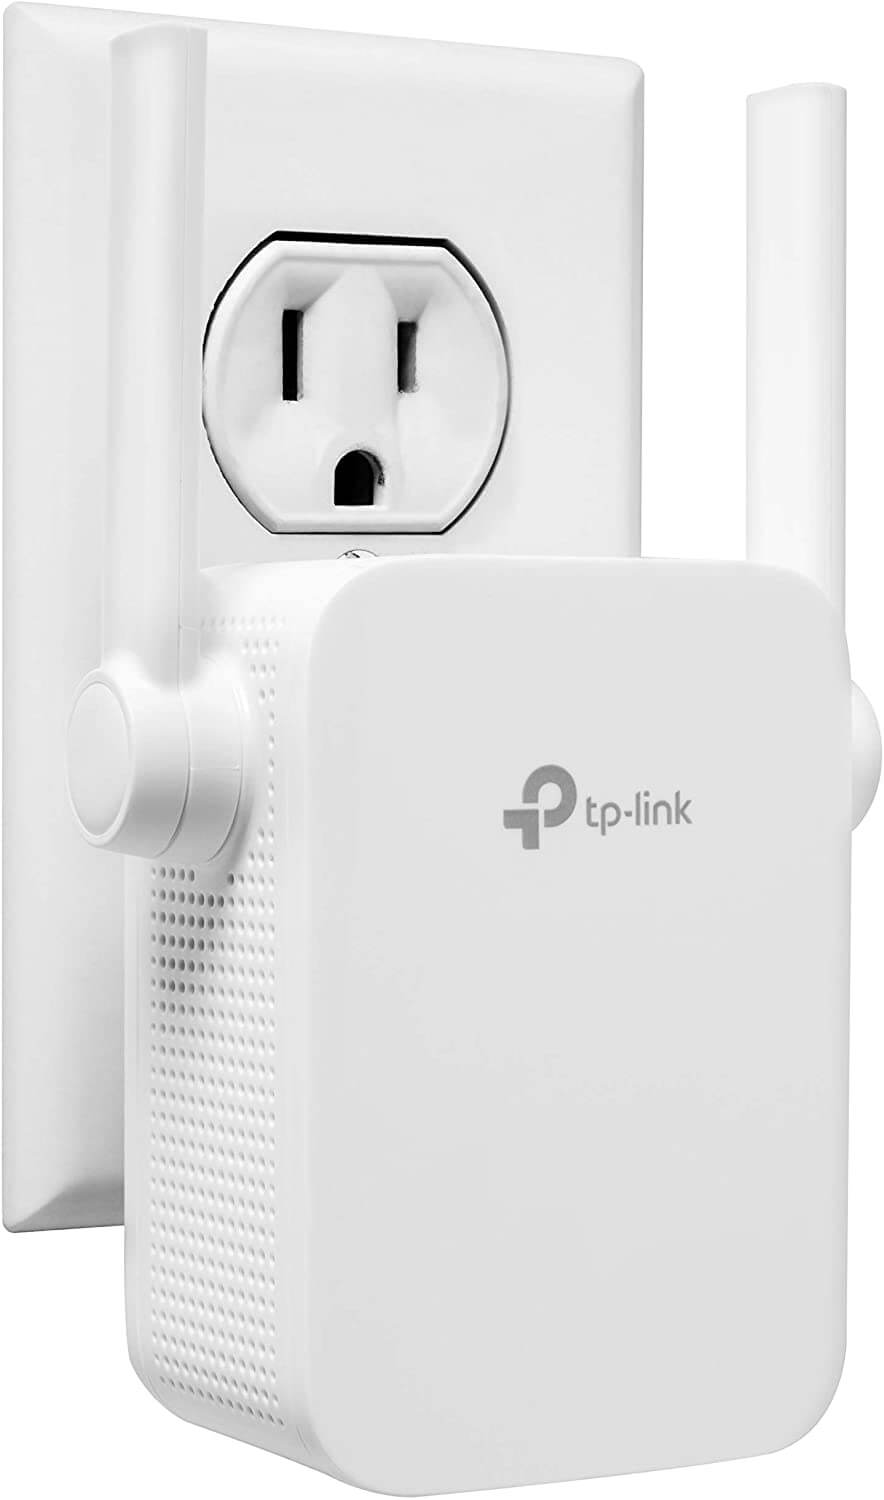 TP-Link N300 WiFi Extenders for Ring Cameras